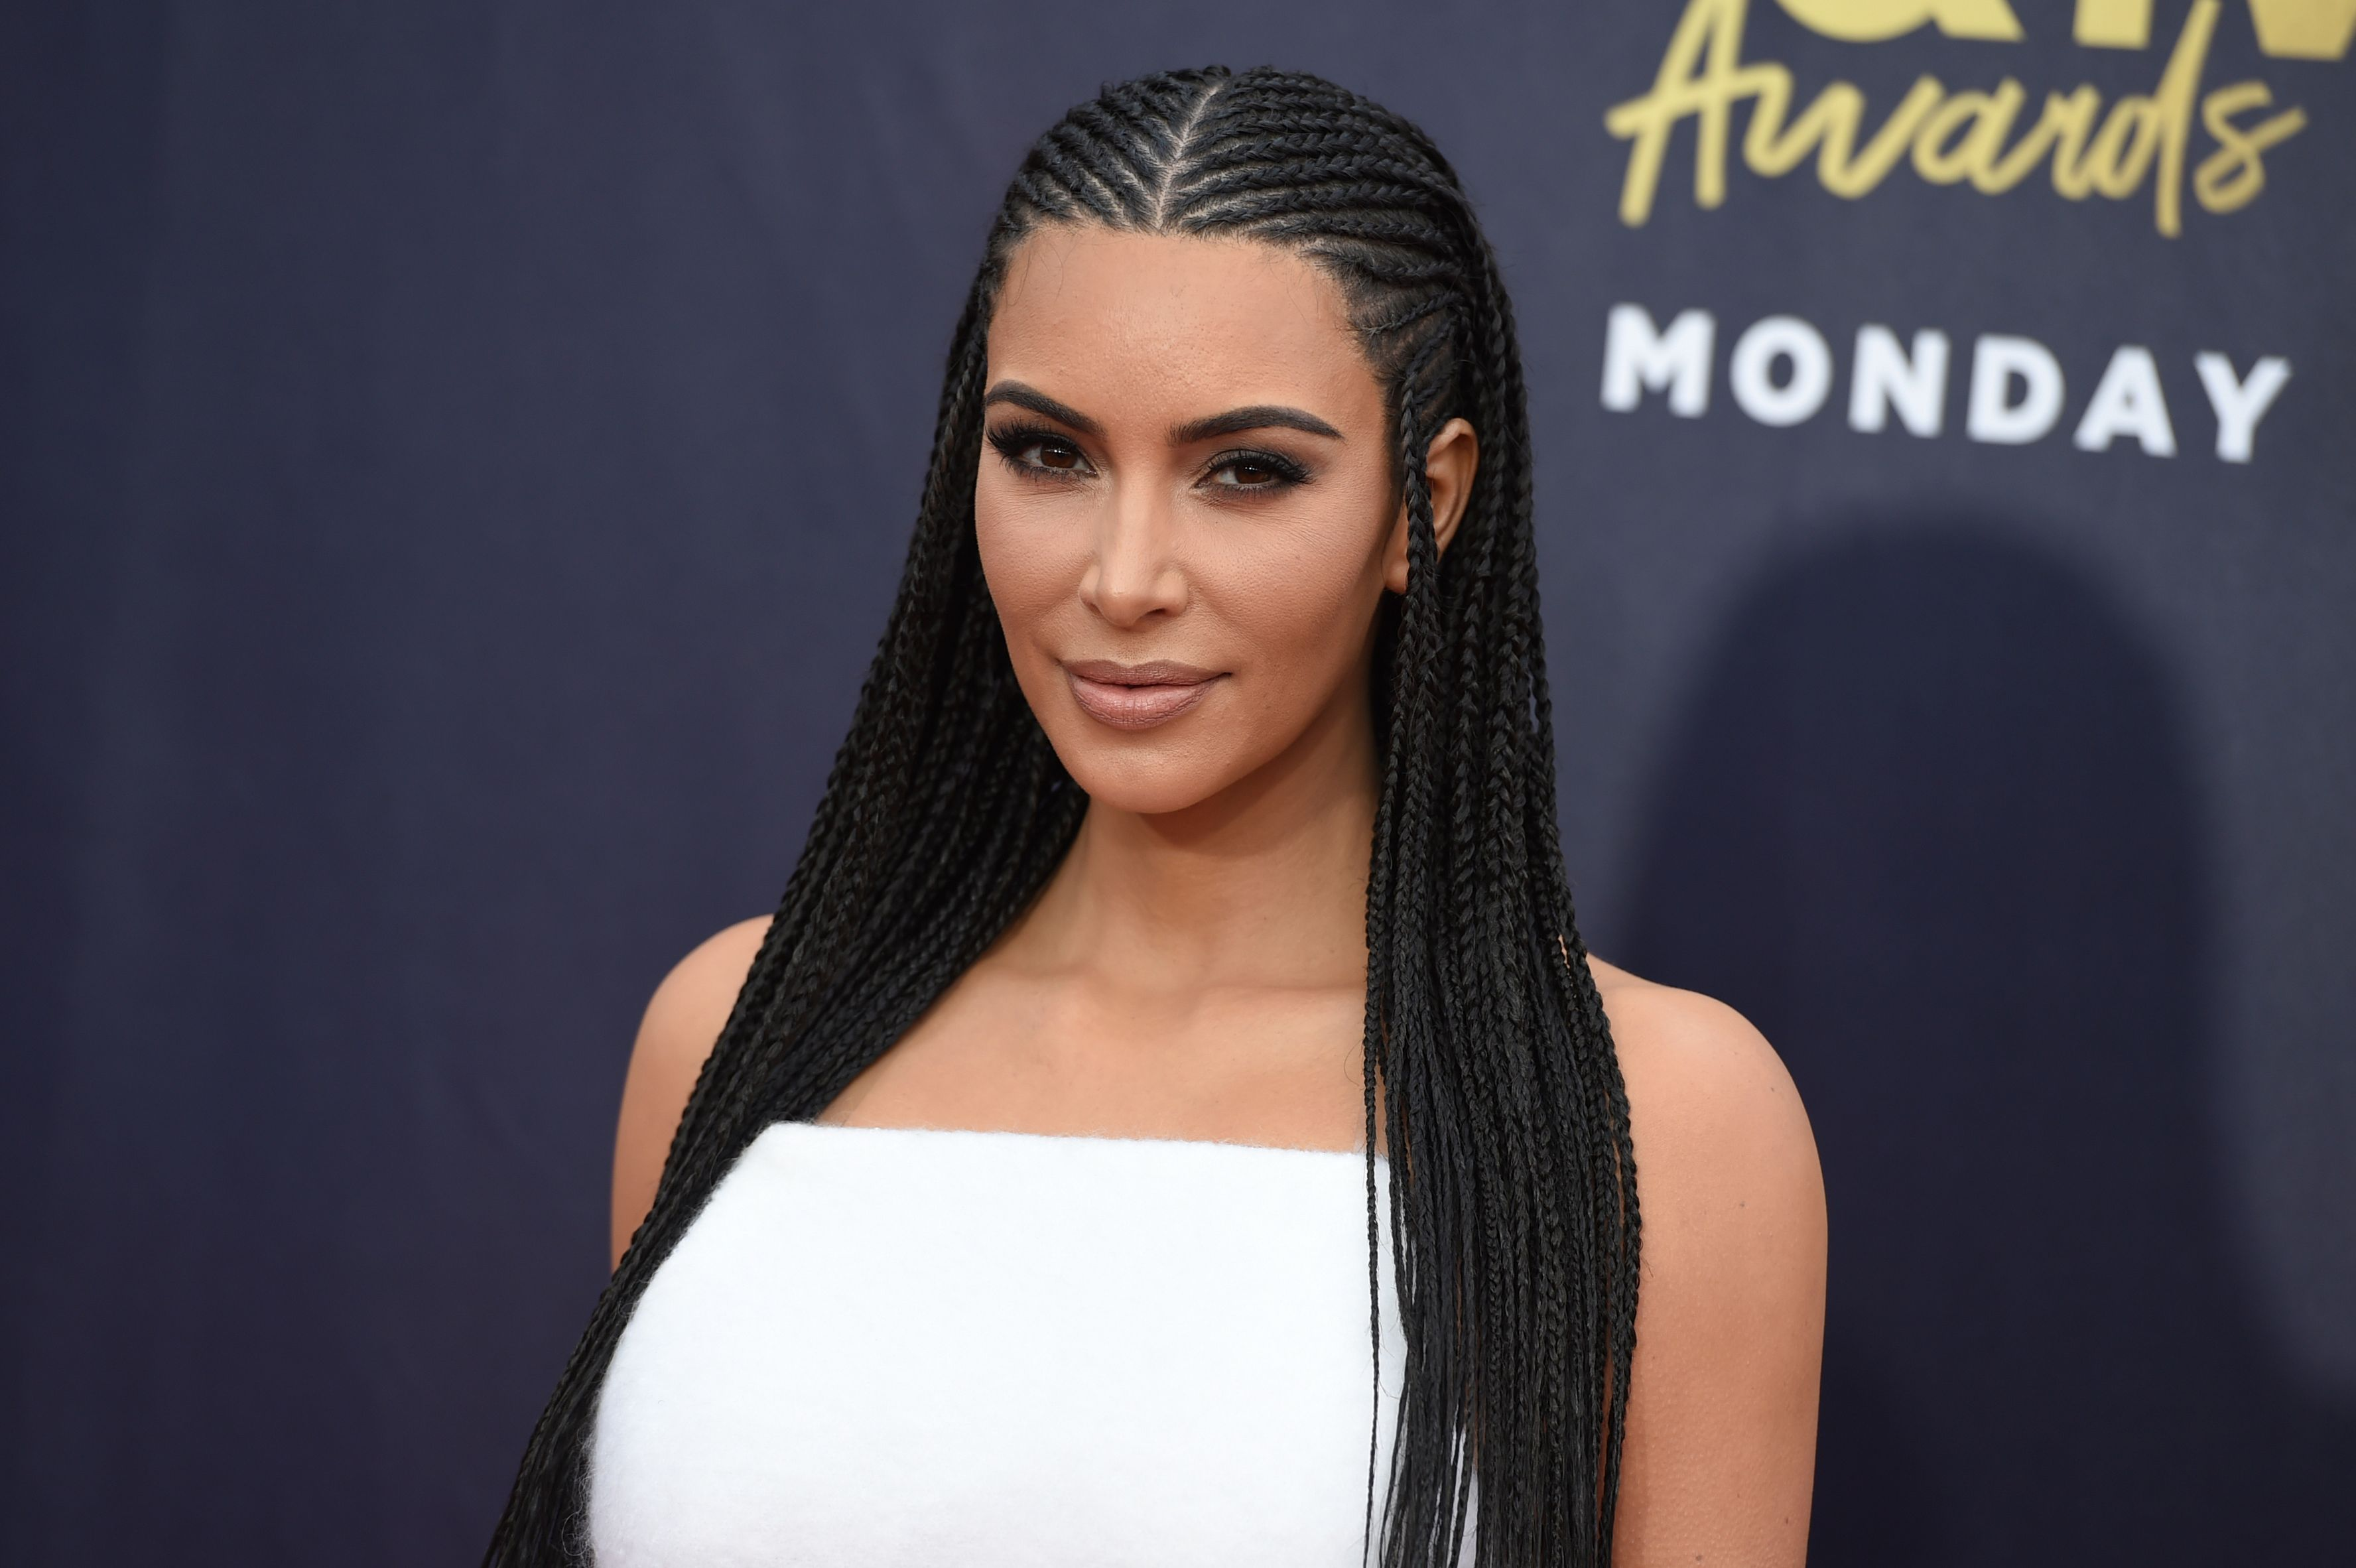 Kim Kardashian West slammed as 'ignorant' for wearing braids at MTV Movie & TV Awards